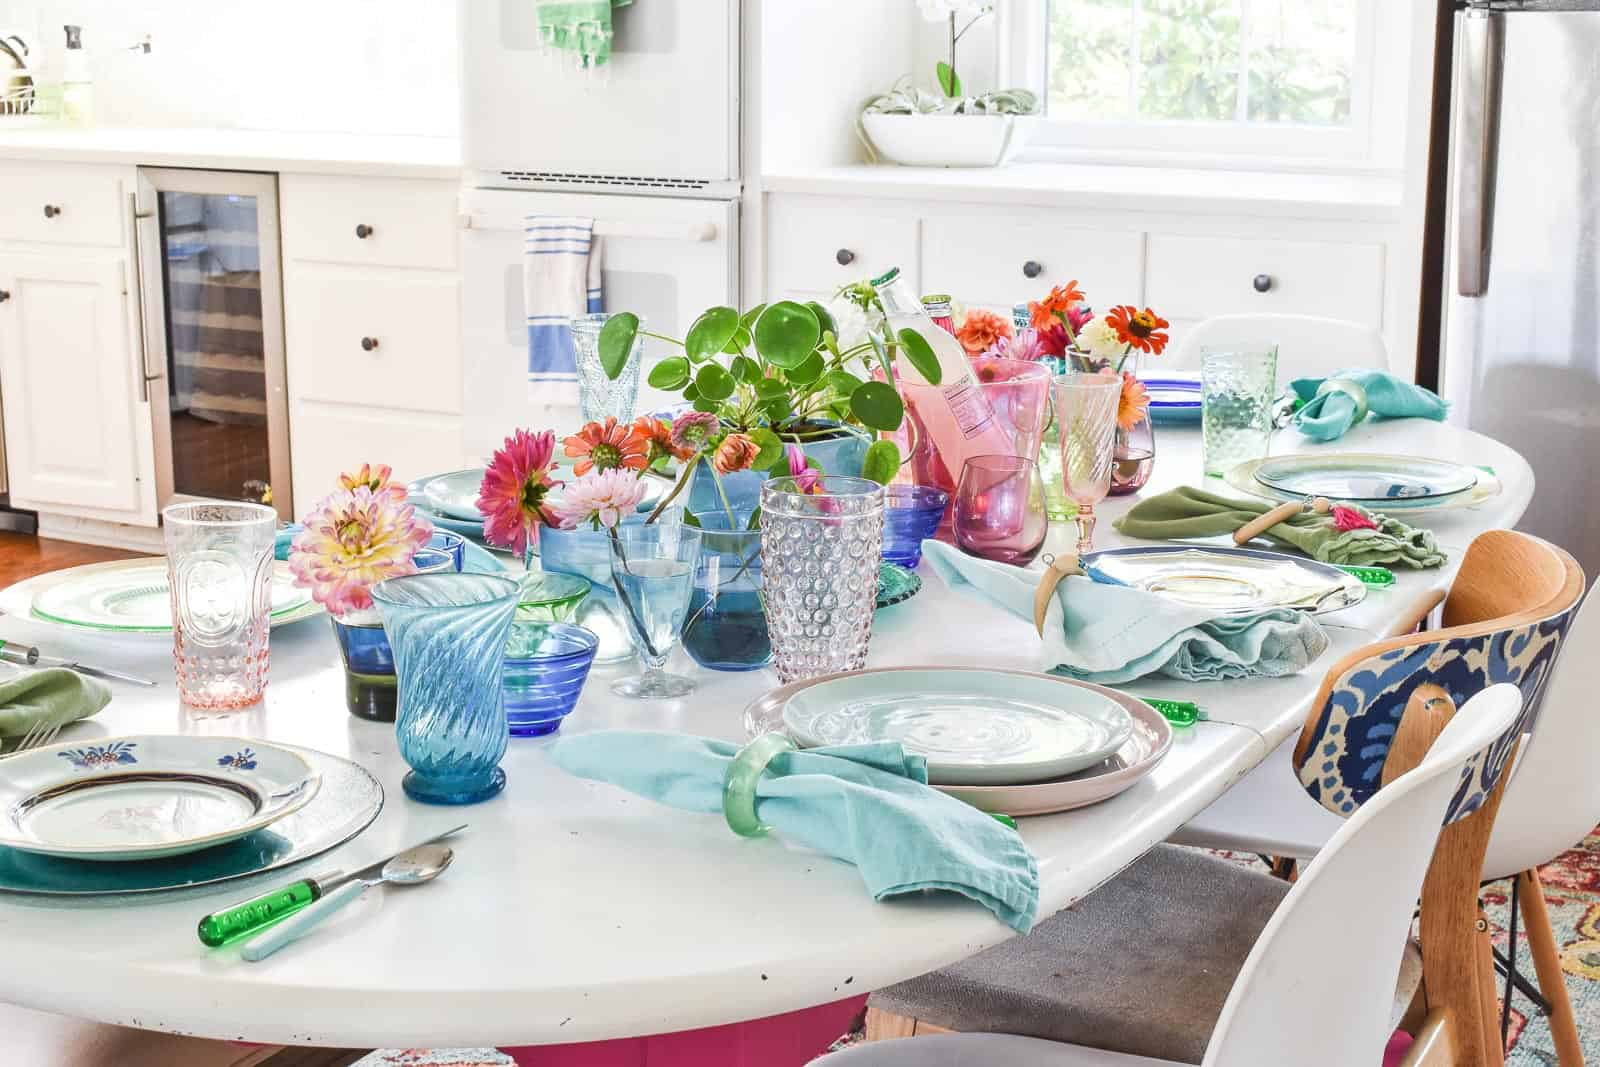 using rainbow glass to set a colorful table